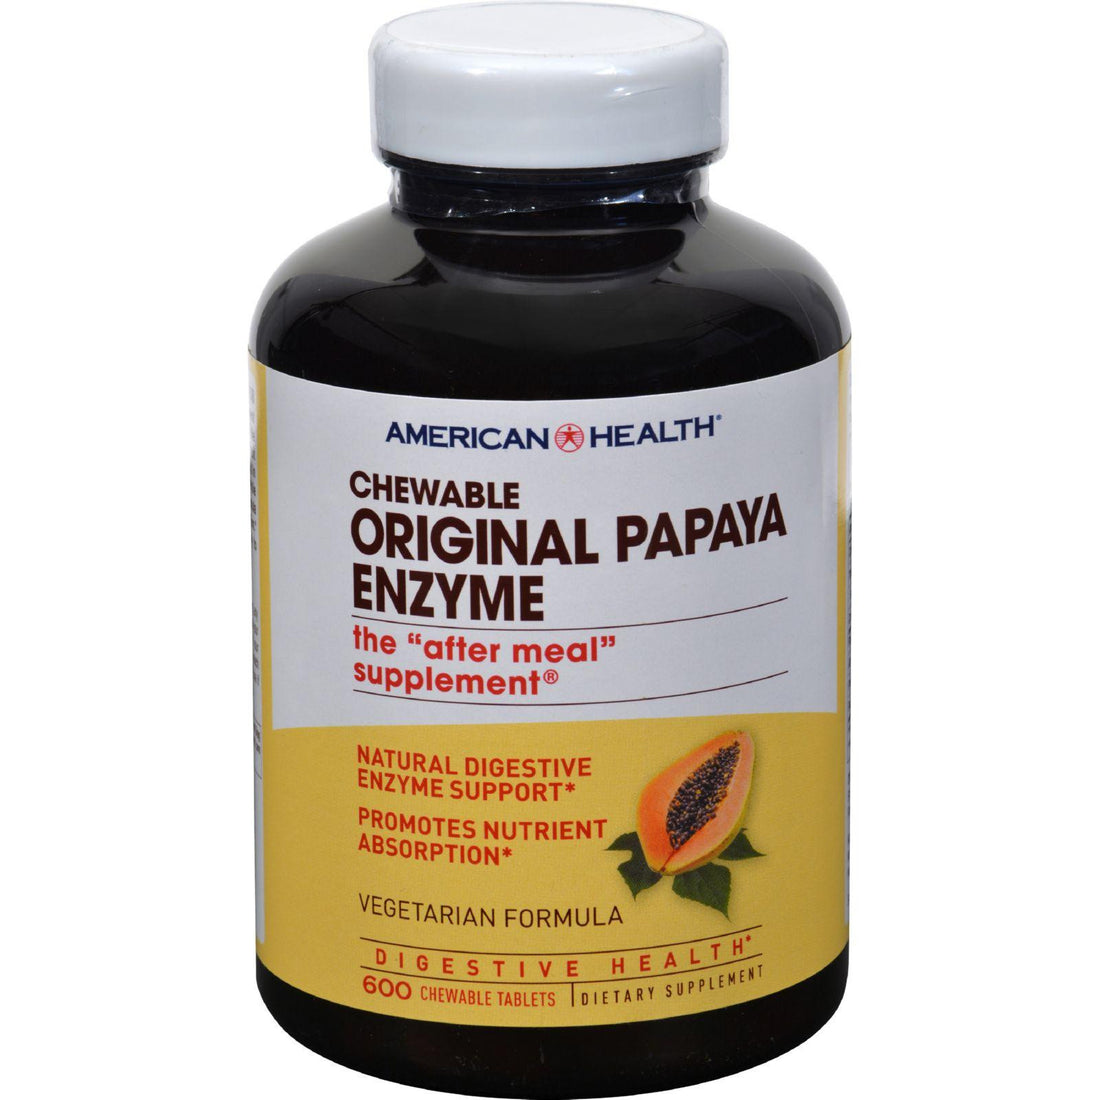 Mother Mantis: American Health Original Papaya Enzyme Chewable - 600 Tablets American Health